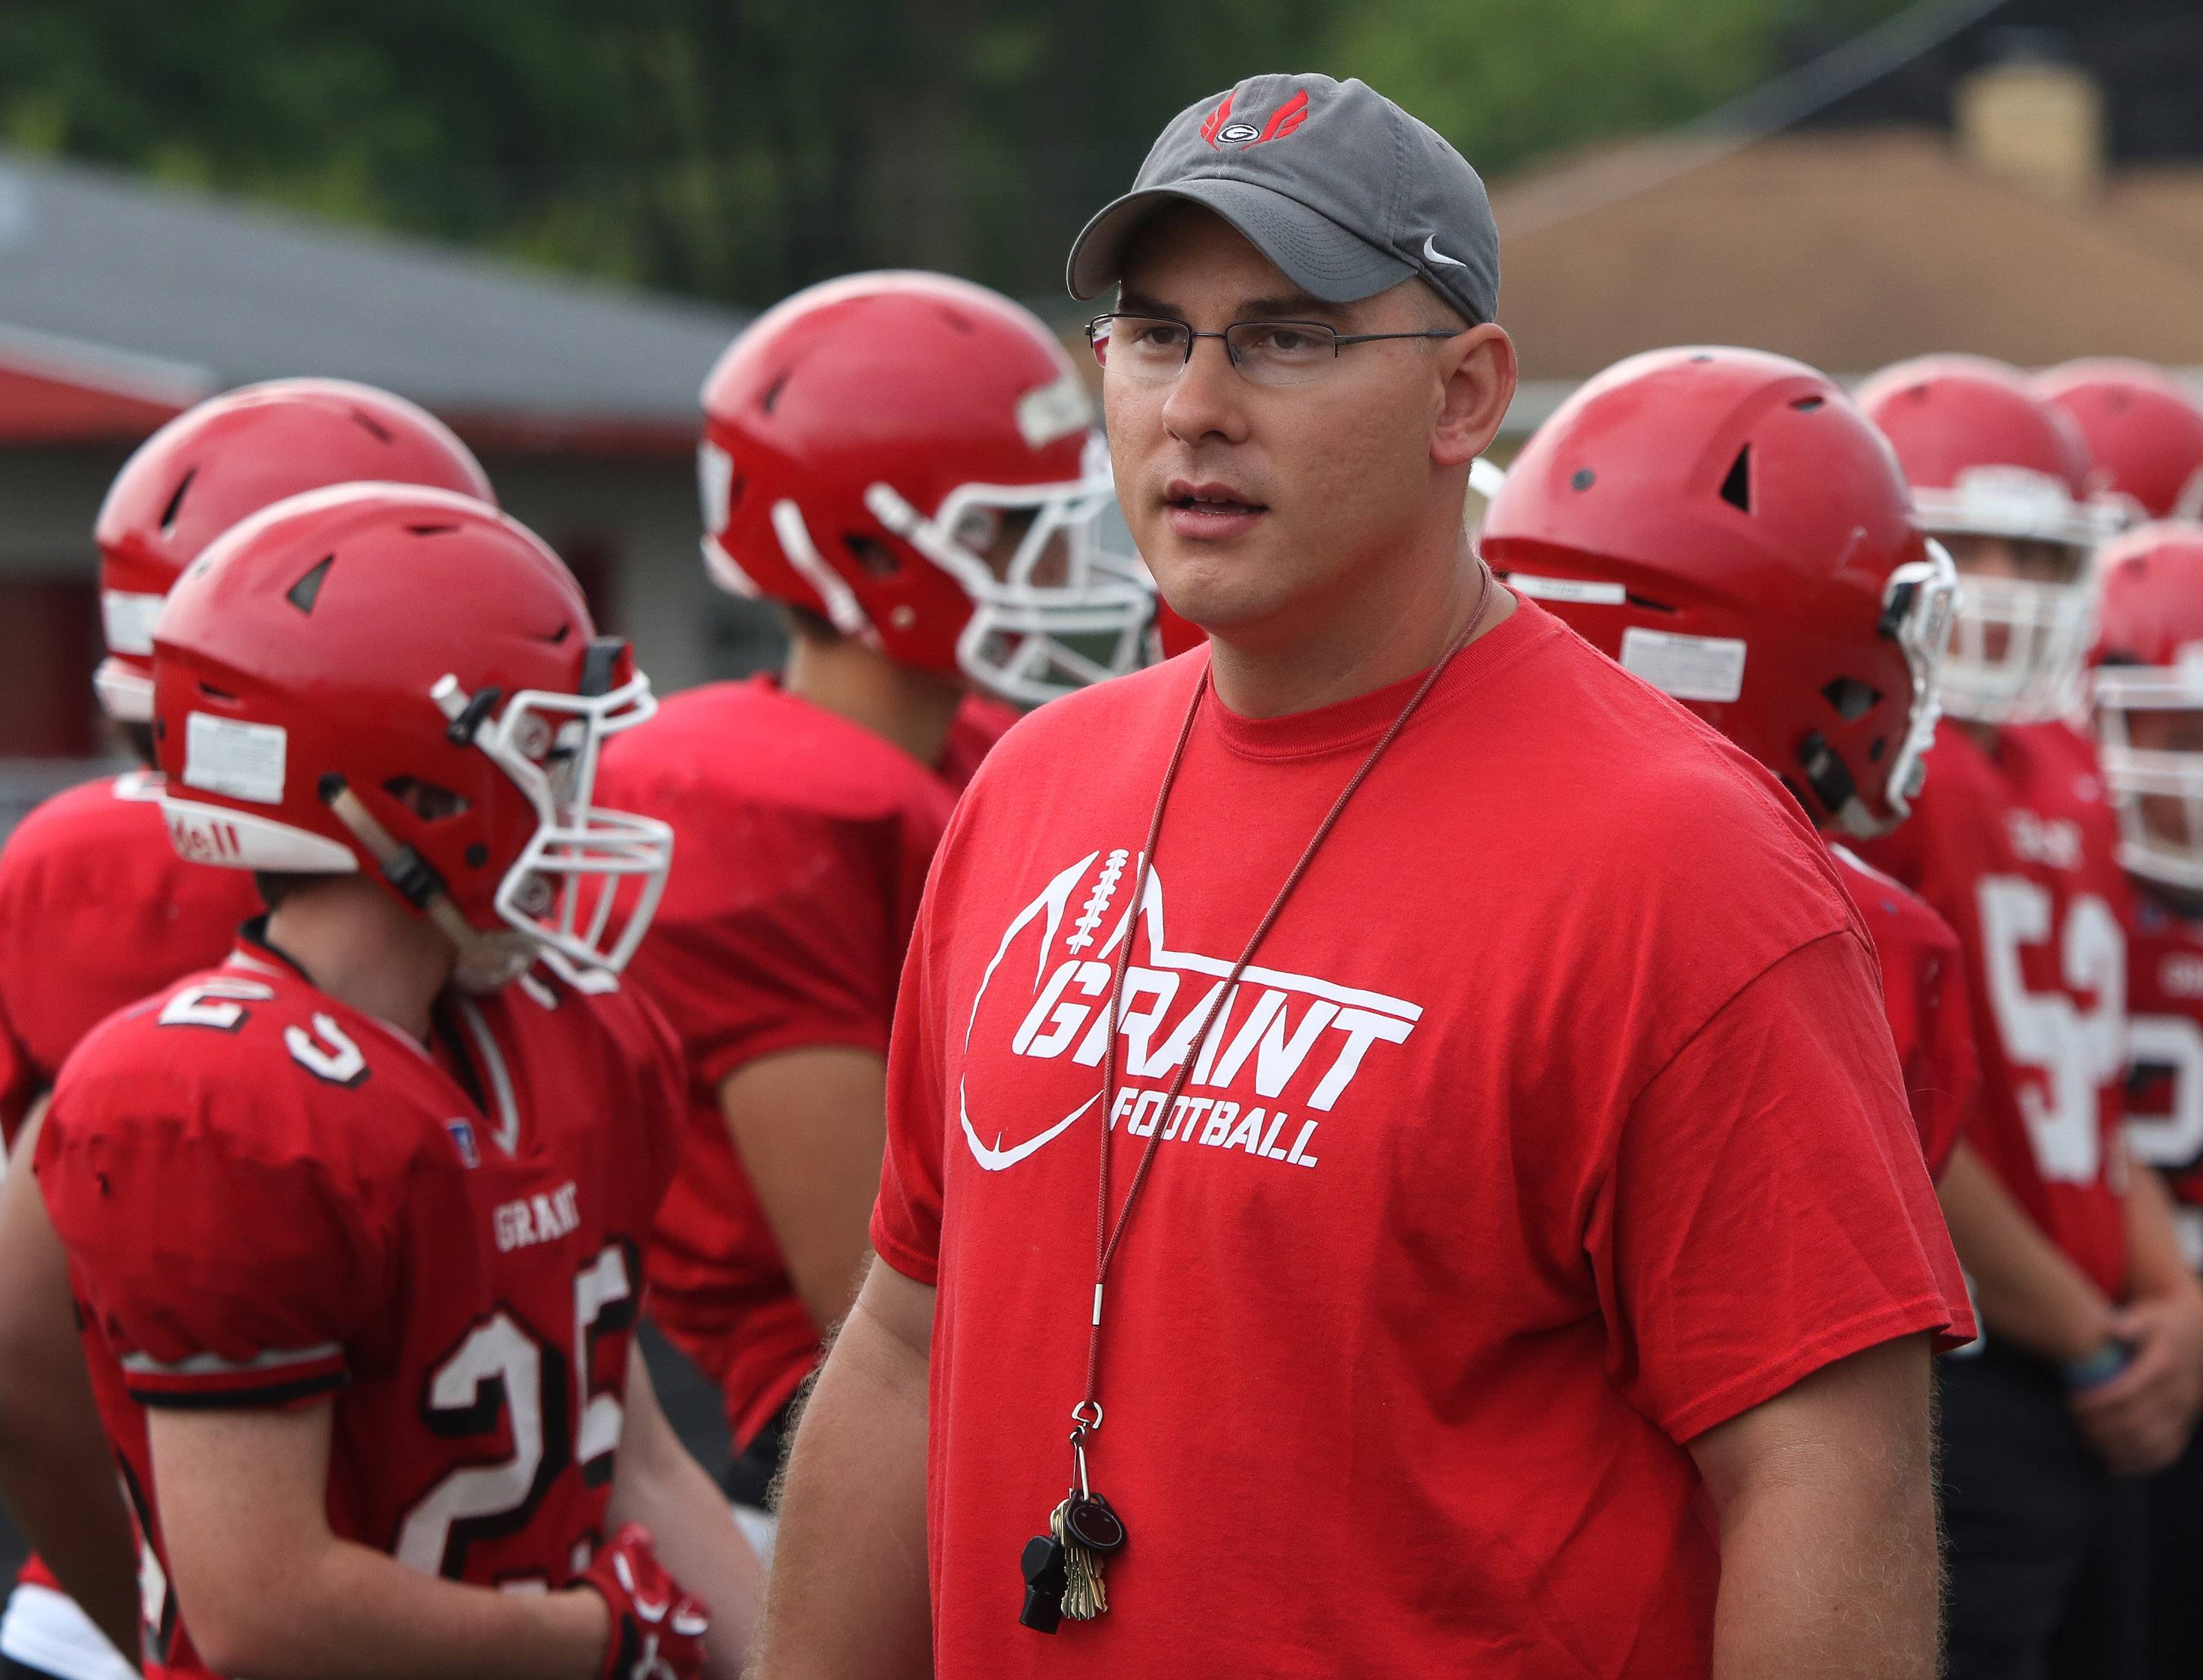 Head coach Chris Robinson during football practice at Grant High School.